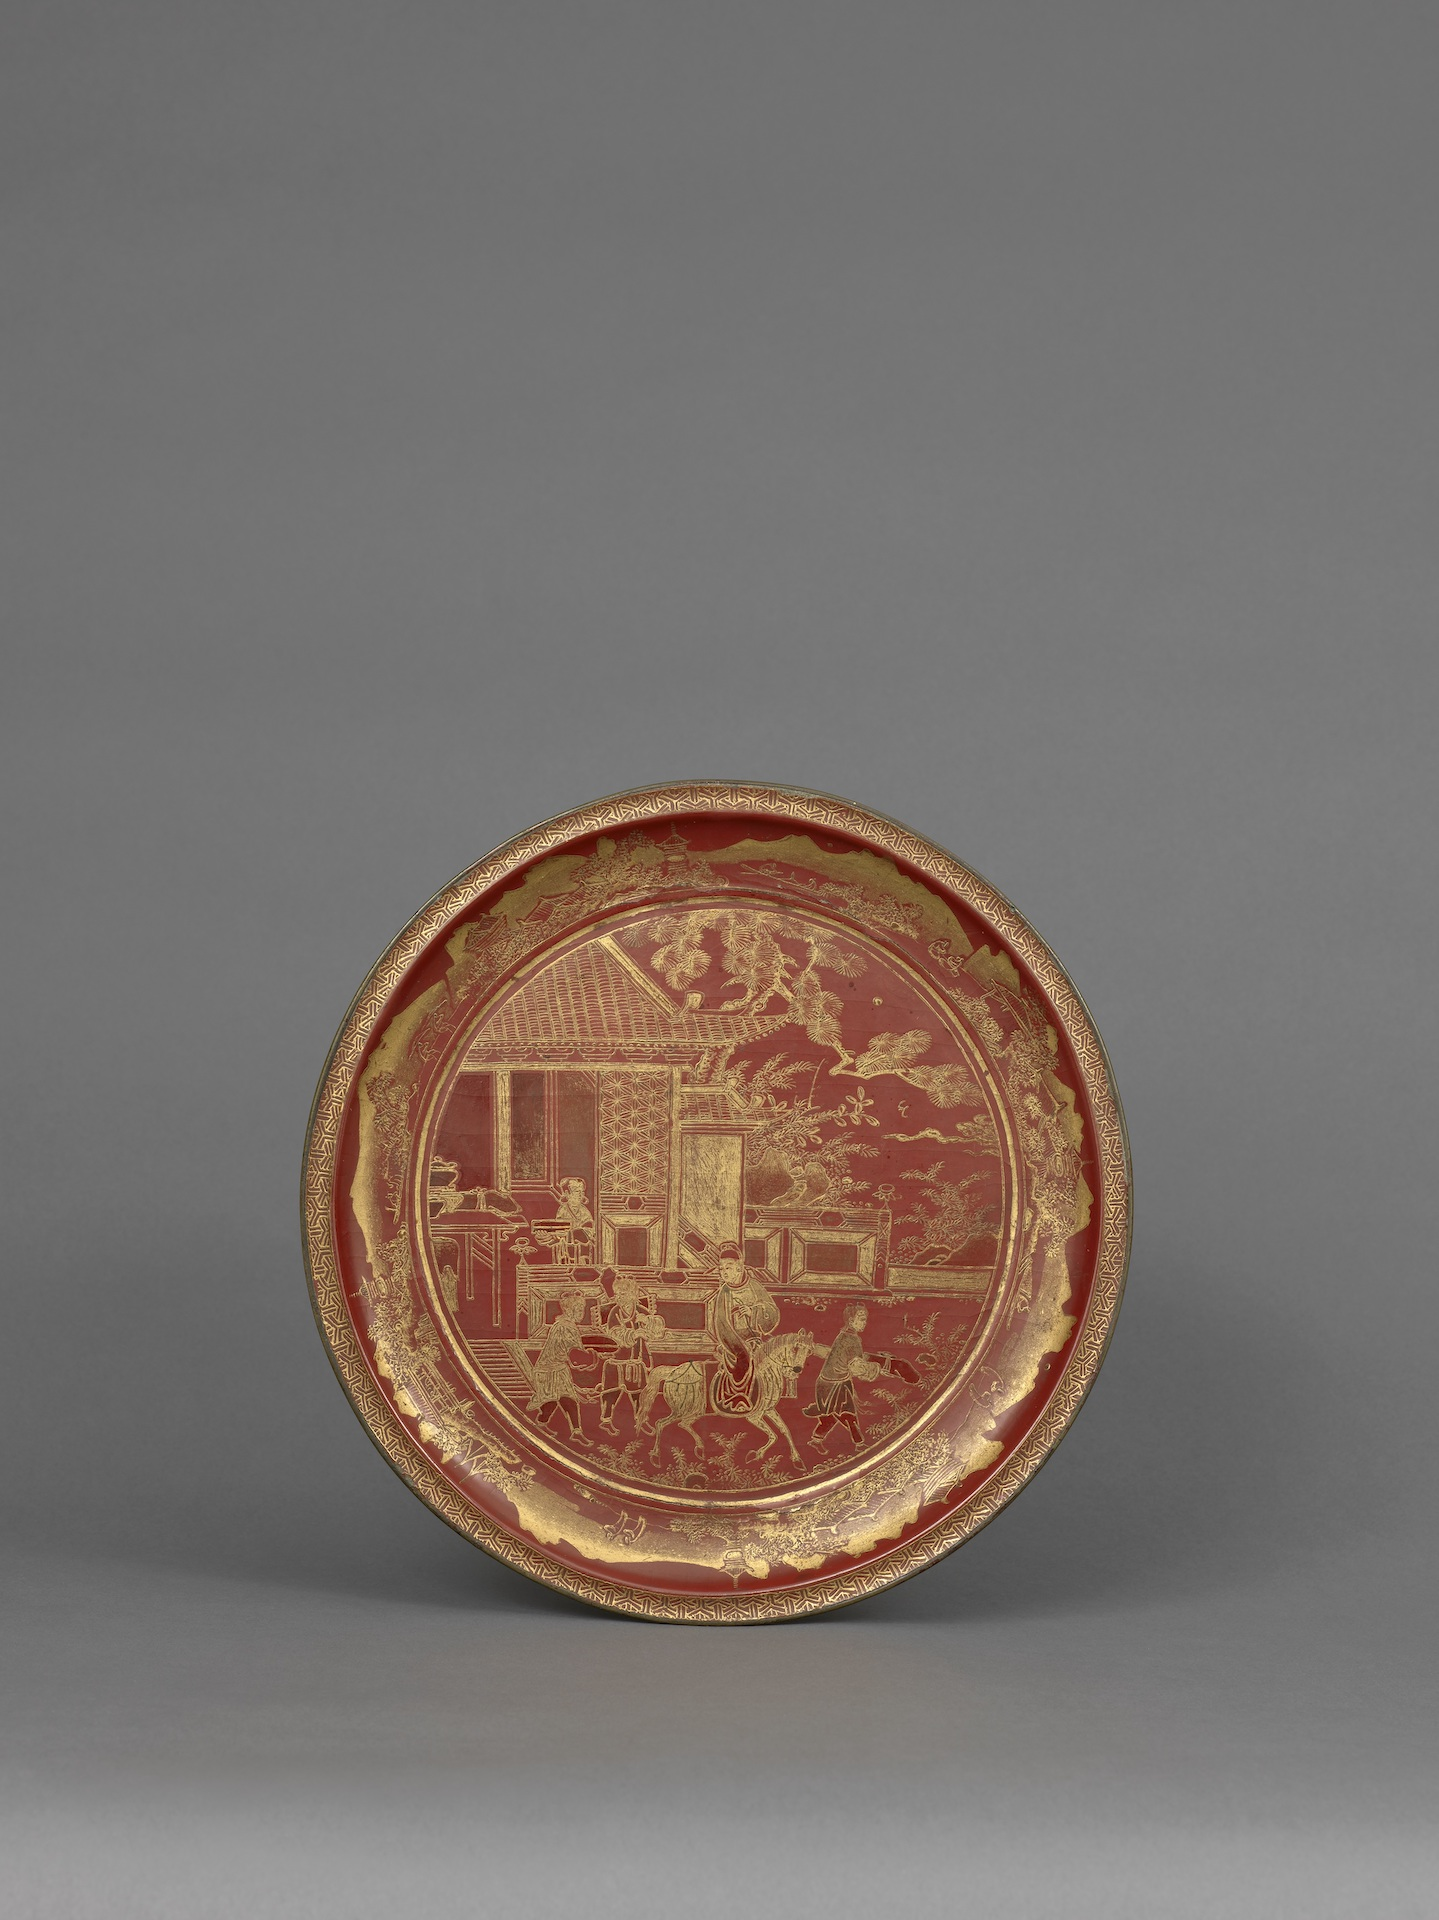 A GILT AND LITHARGE PAINTED RED LACQUER FOOTED DISH Ryukyu Islands, 18th century Diameter: 26.5 cm, 10 ½ inches